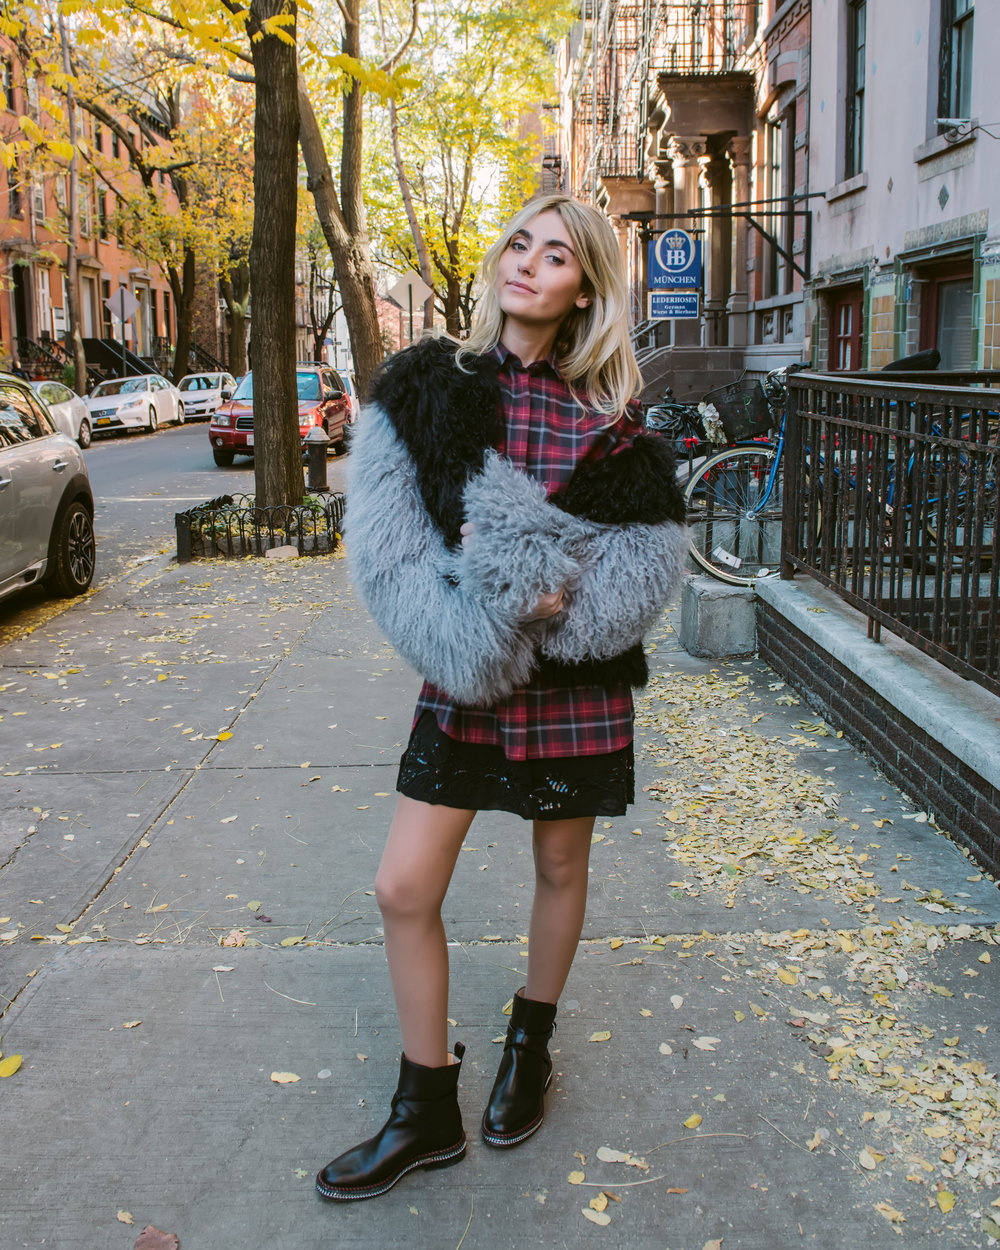 CHARLOTTE BICKLEY YIN 2MY YANG SISTER FASHION BLOGGERS PLAID POST